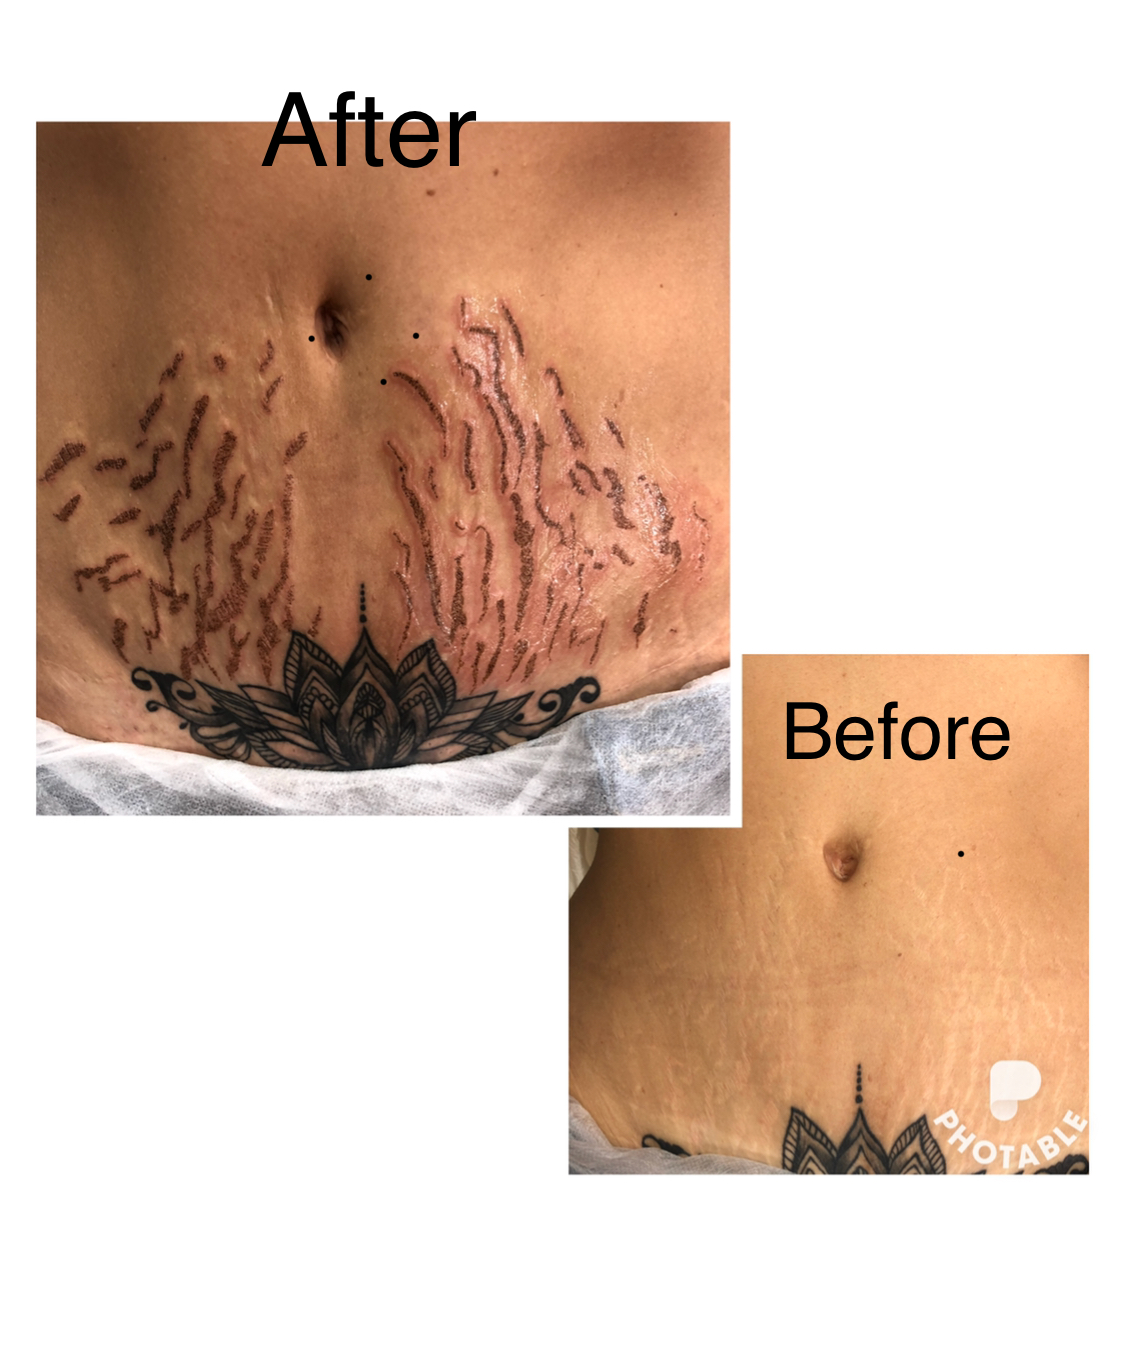 Plasma Pen Fibroblasth Training Beauty Ink Miami